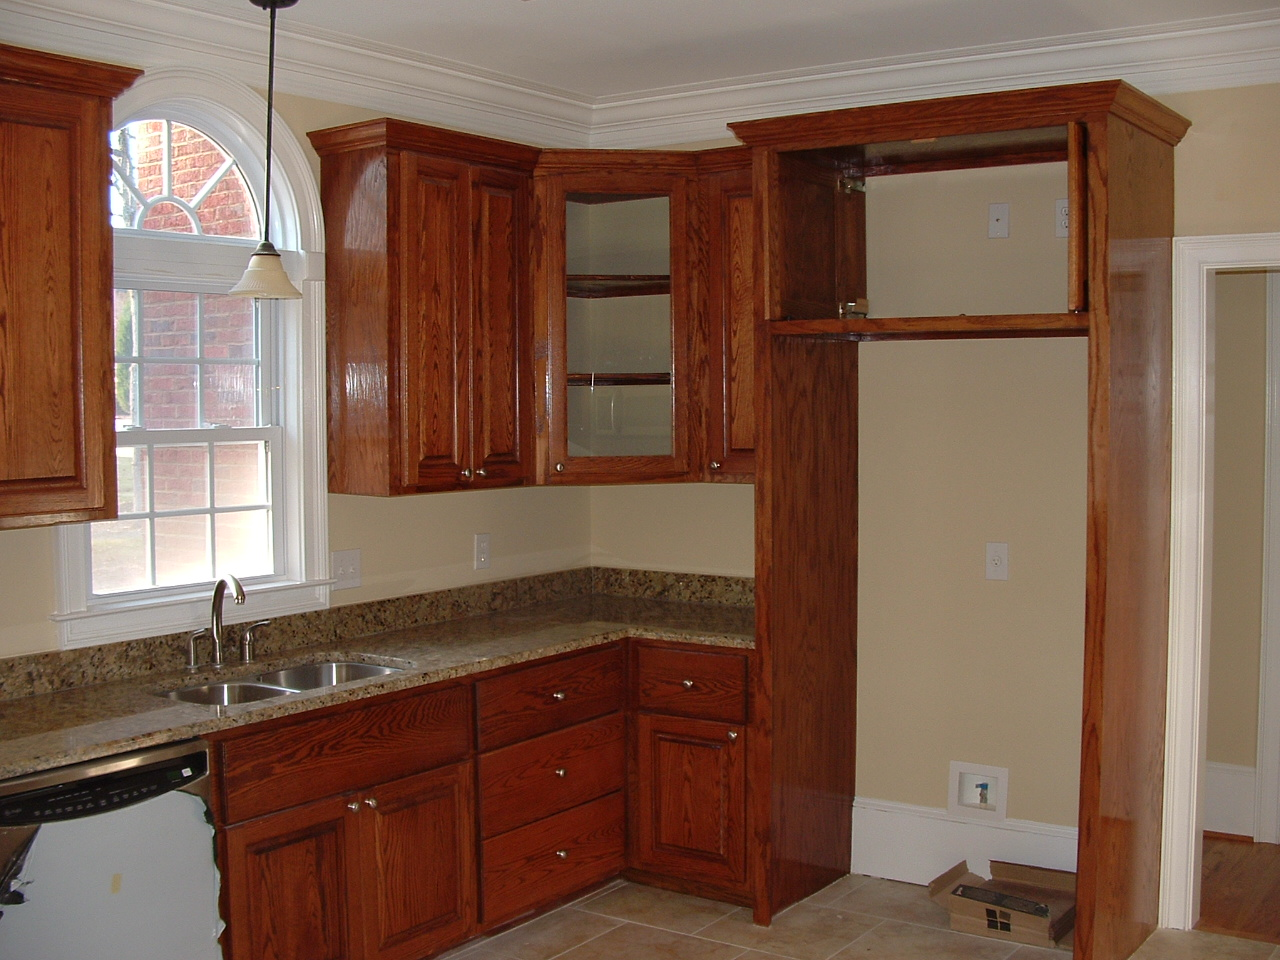 Kitchen free standing cabinets photo - 3